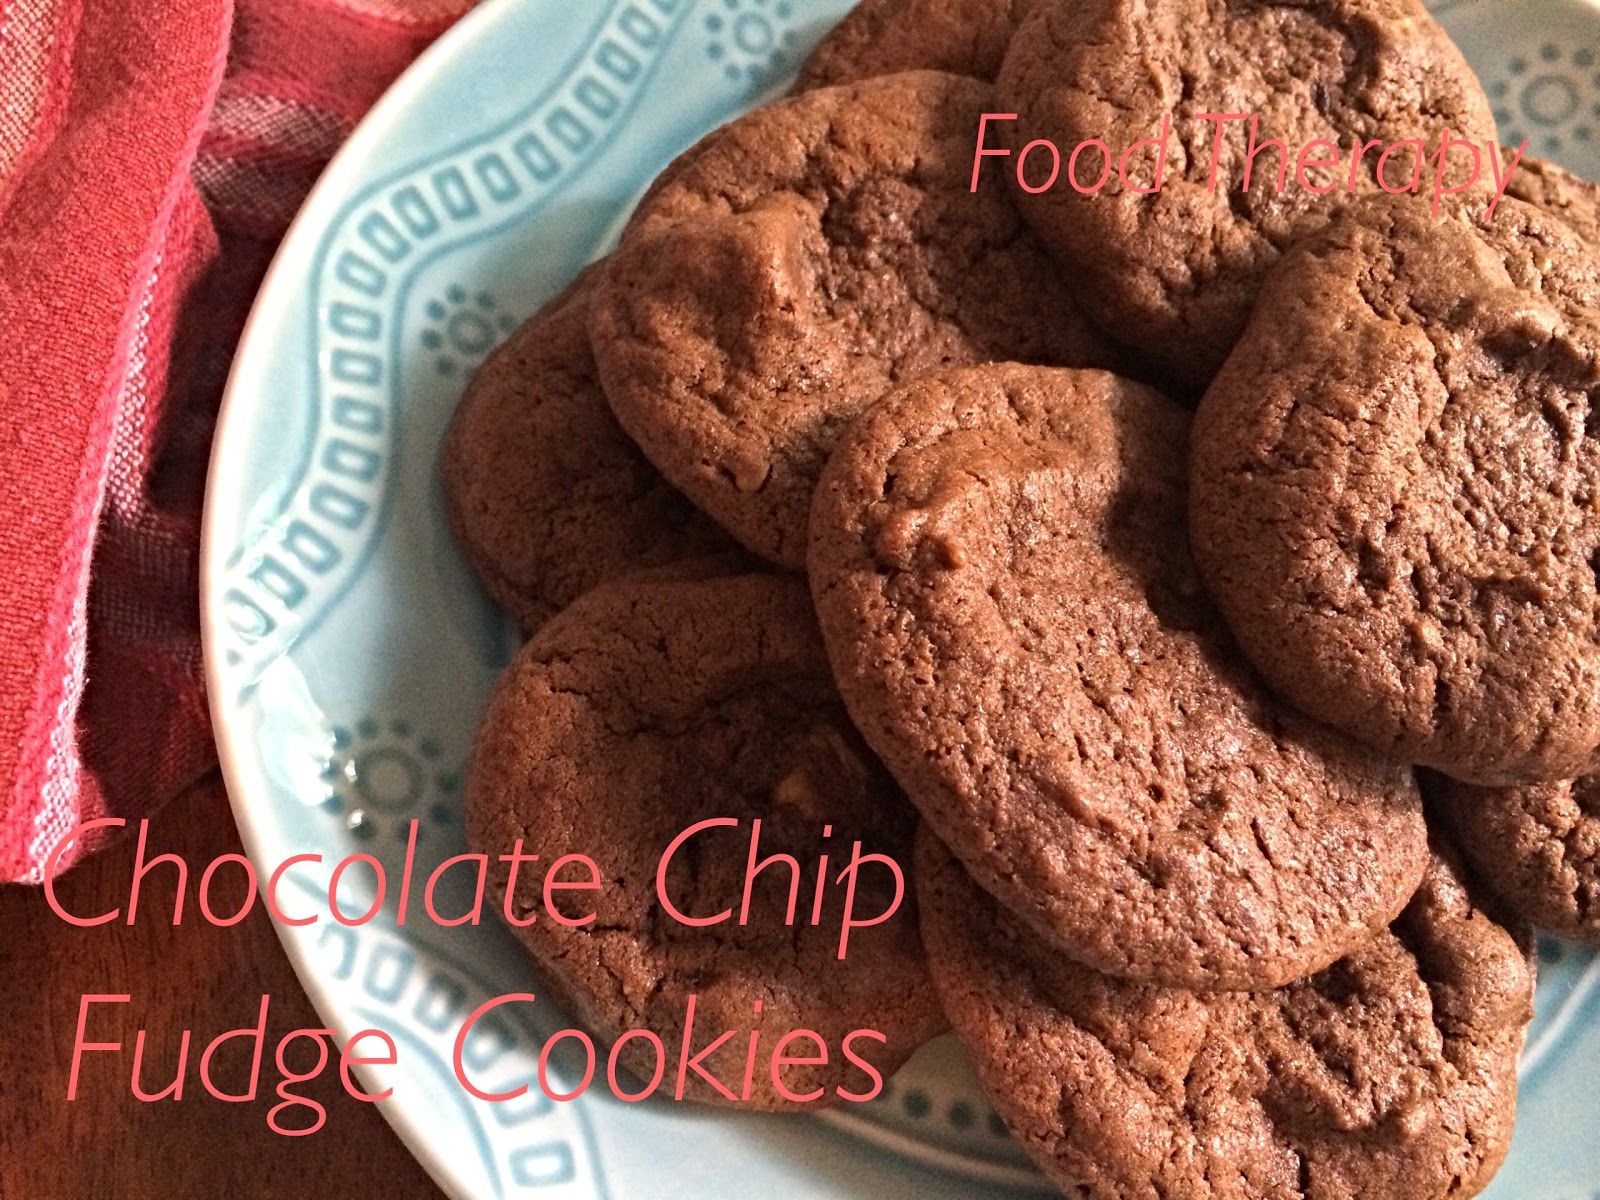 Chocolate Chip Fudge Cookies